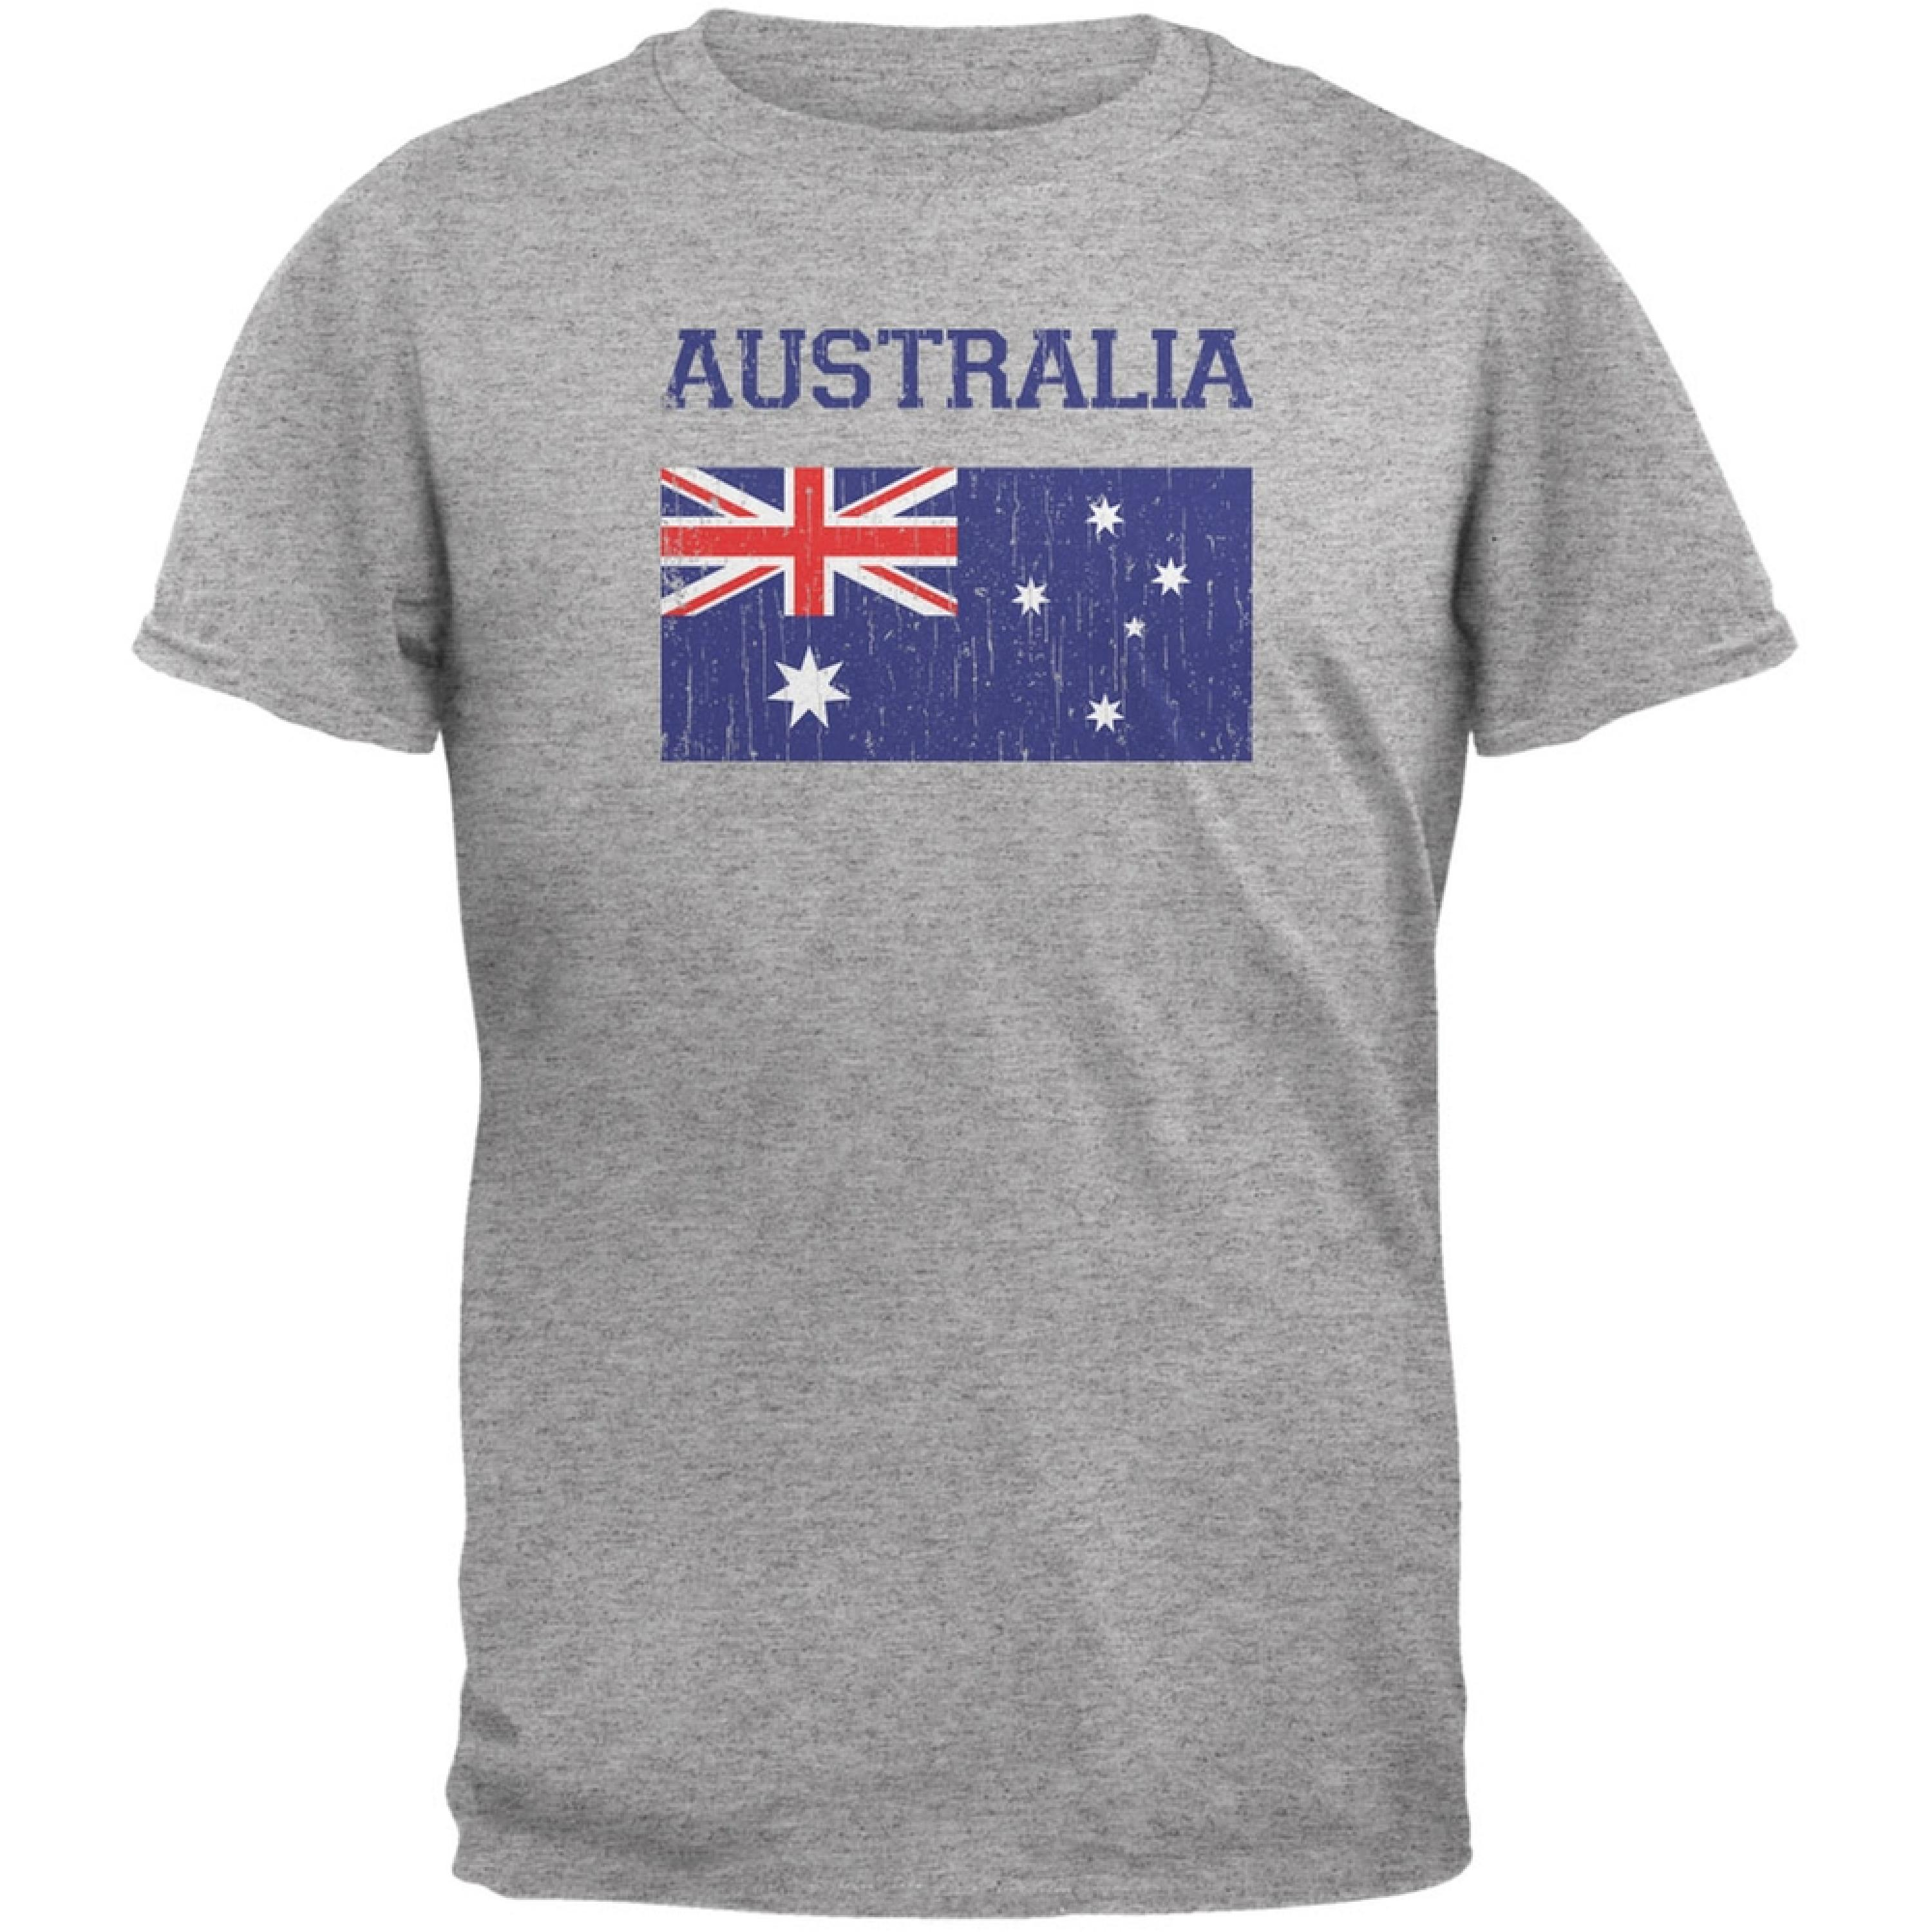 World Cup Distressed Flag Australia Heather Grey Adult T-Shirt